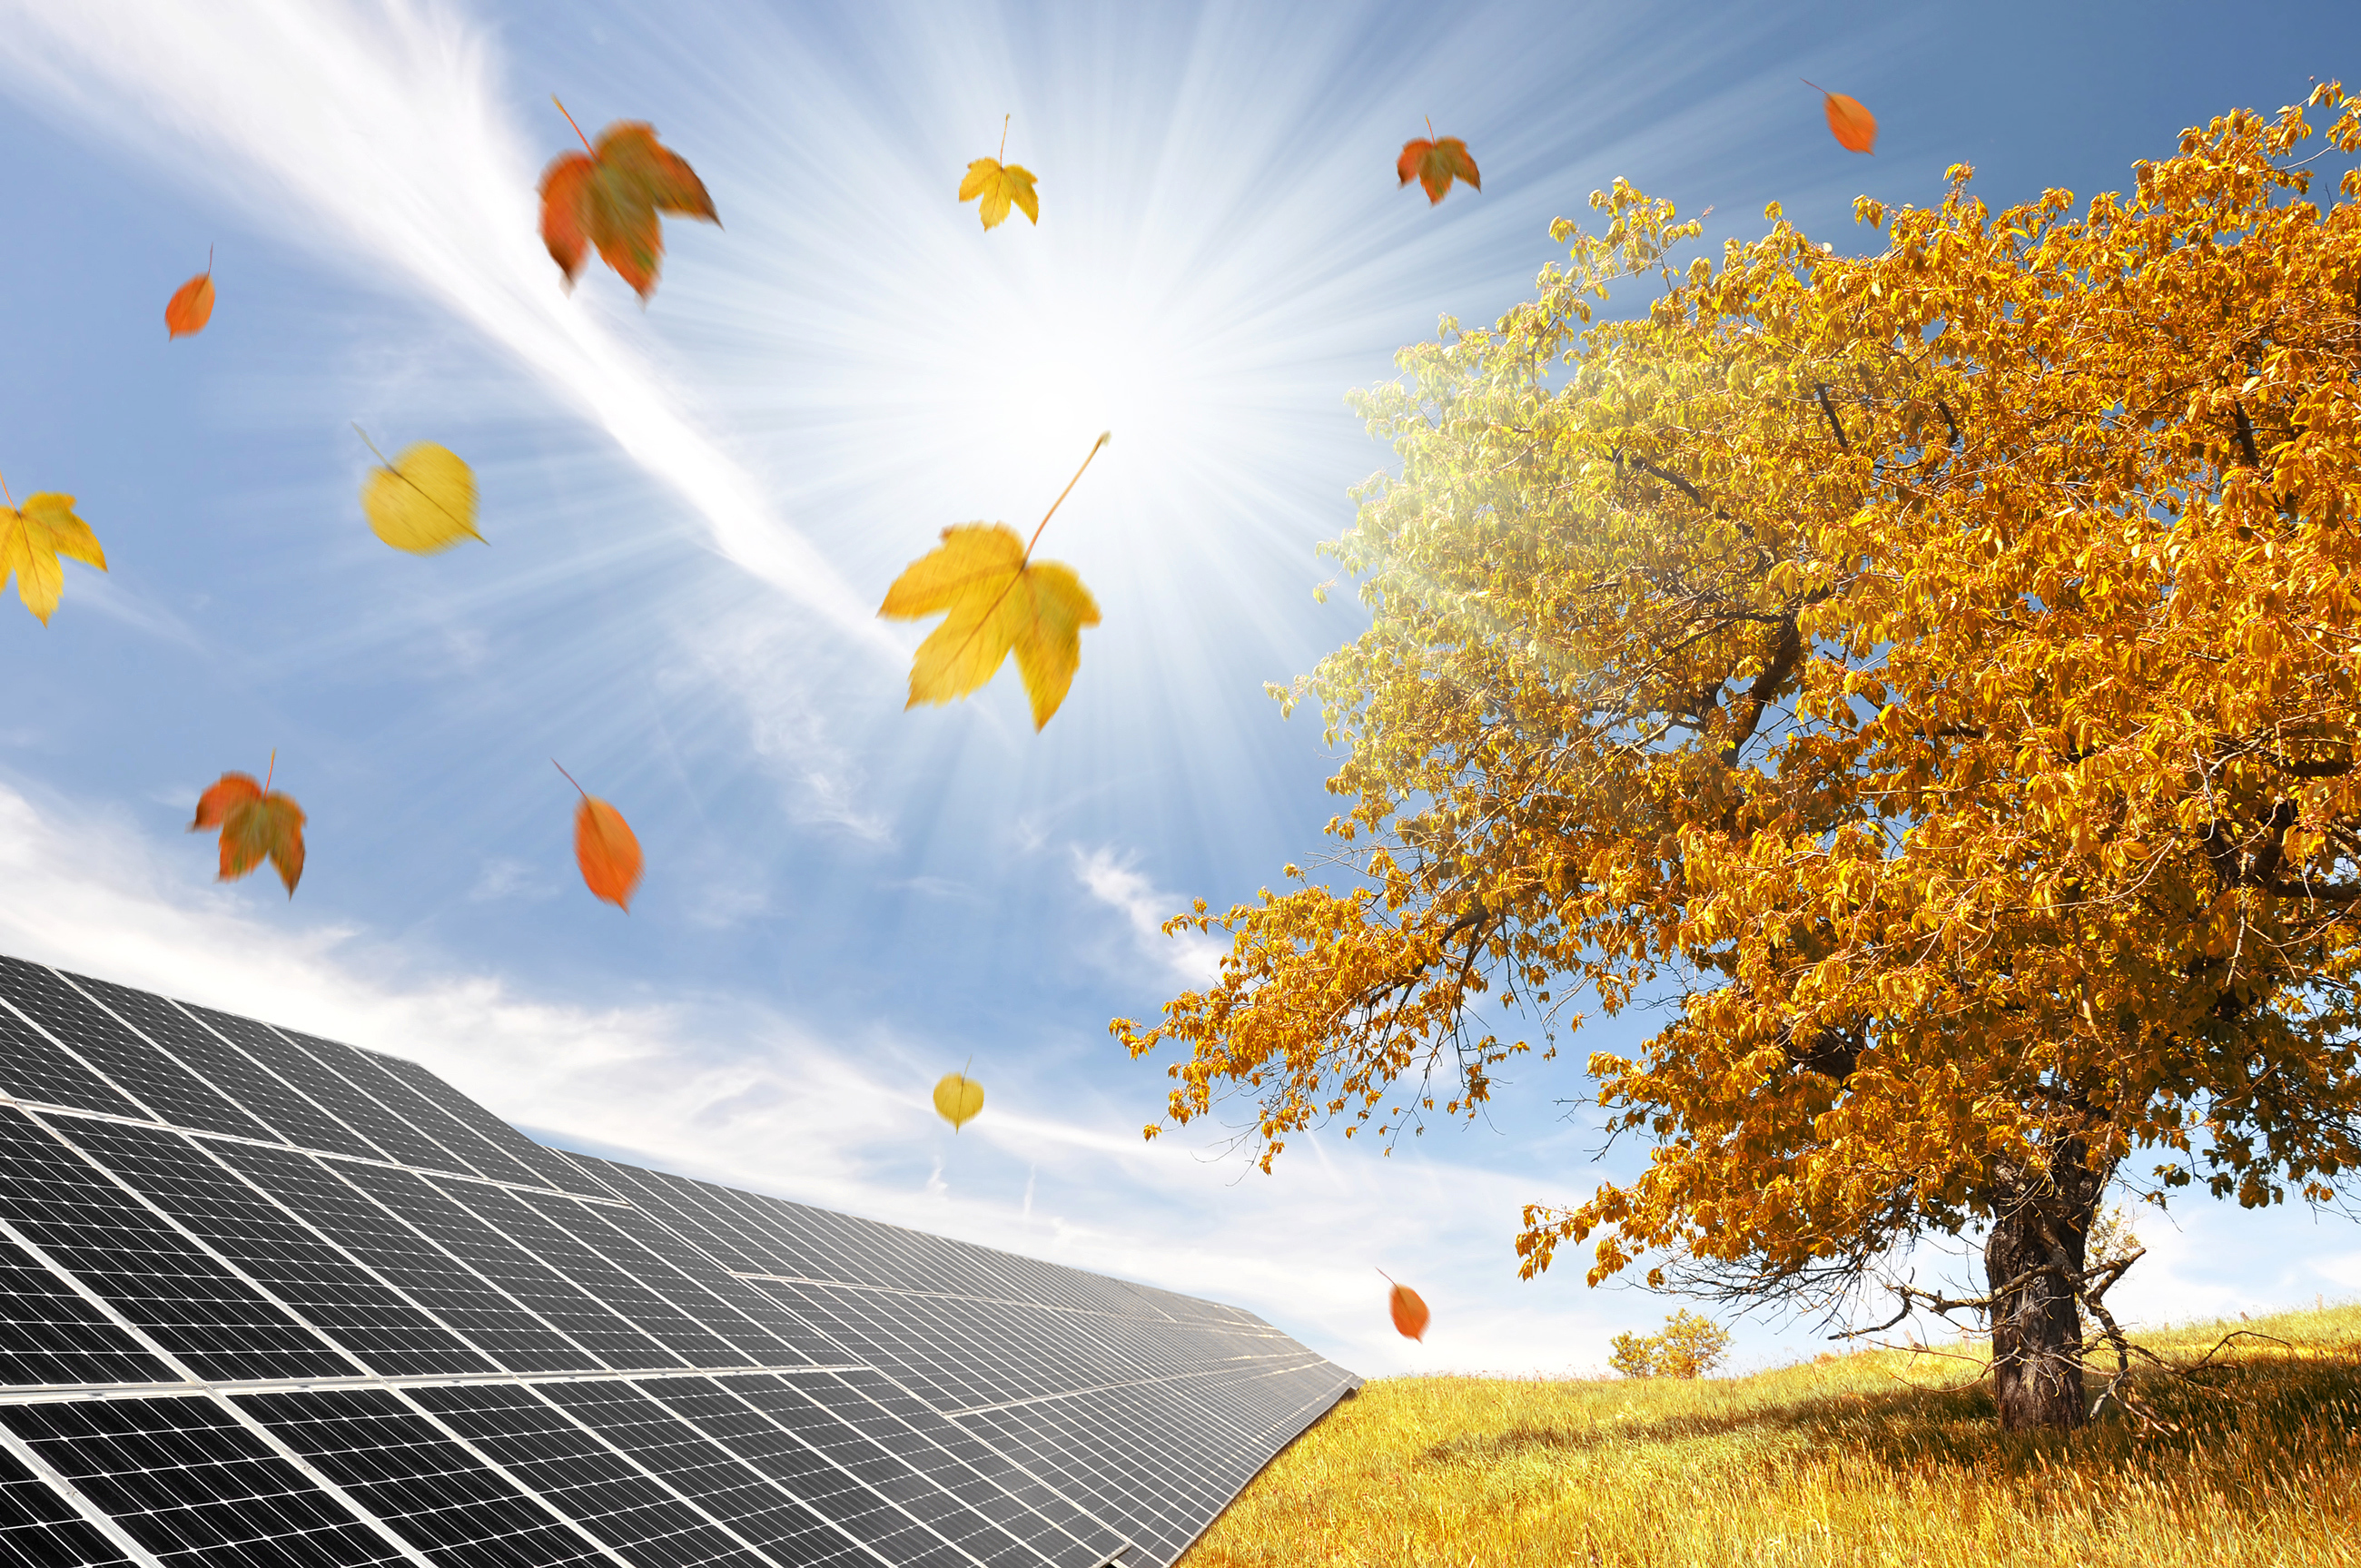 Autumn landscape with solar panels